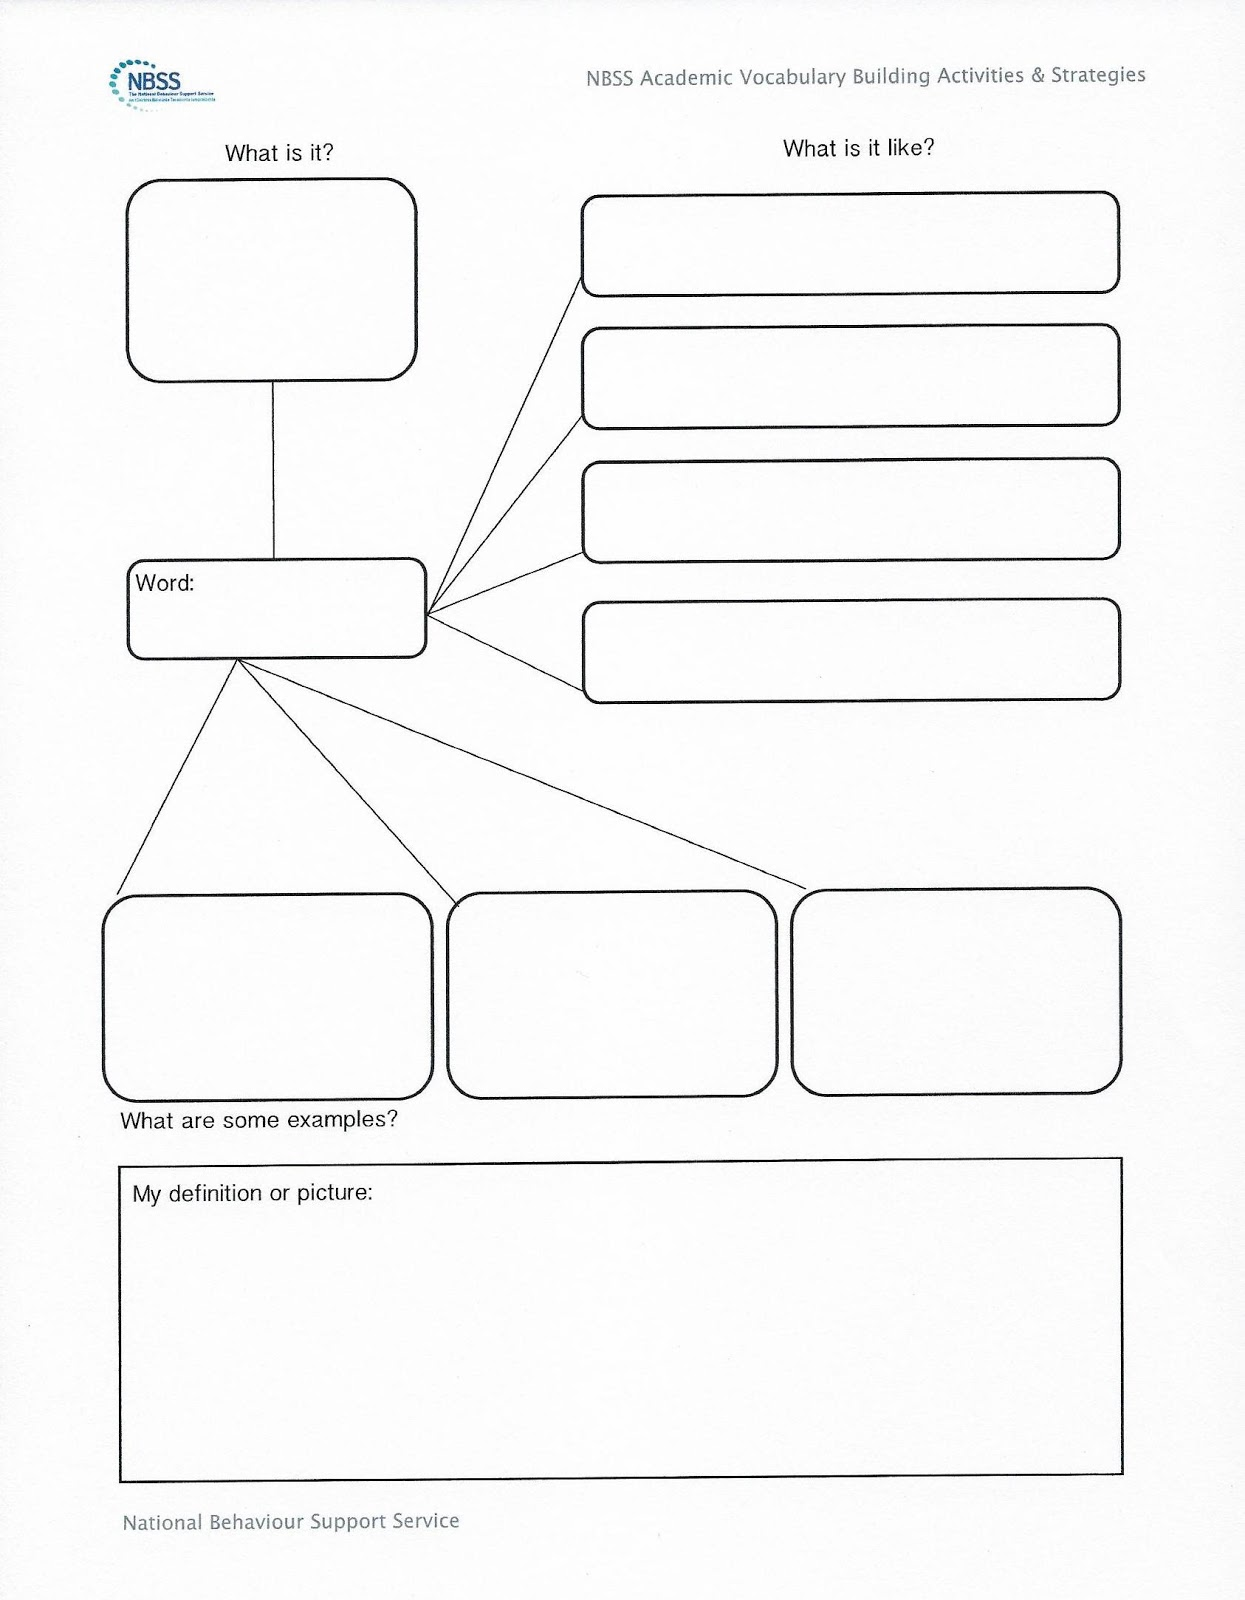 18 Vocabulary Graphic Organizers Images